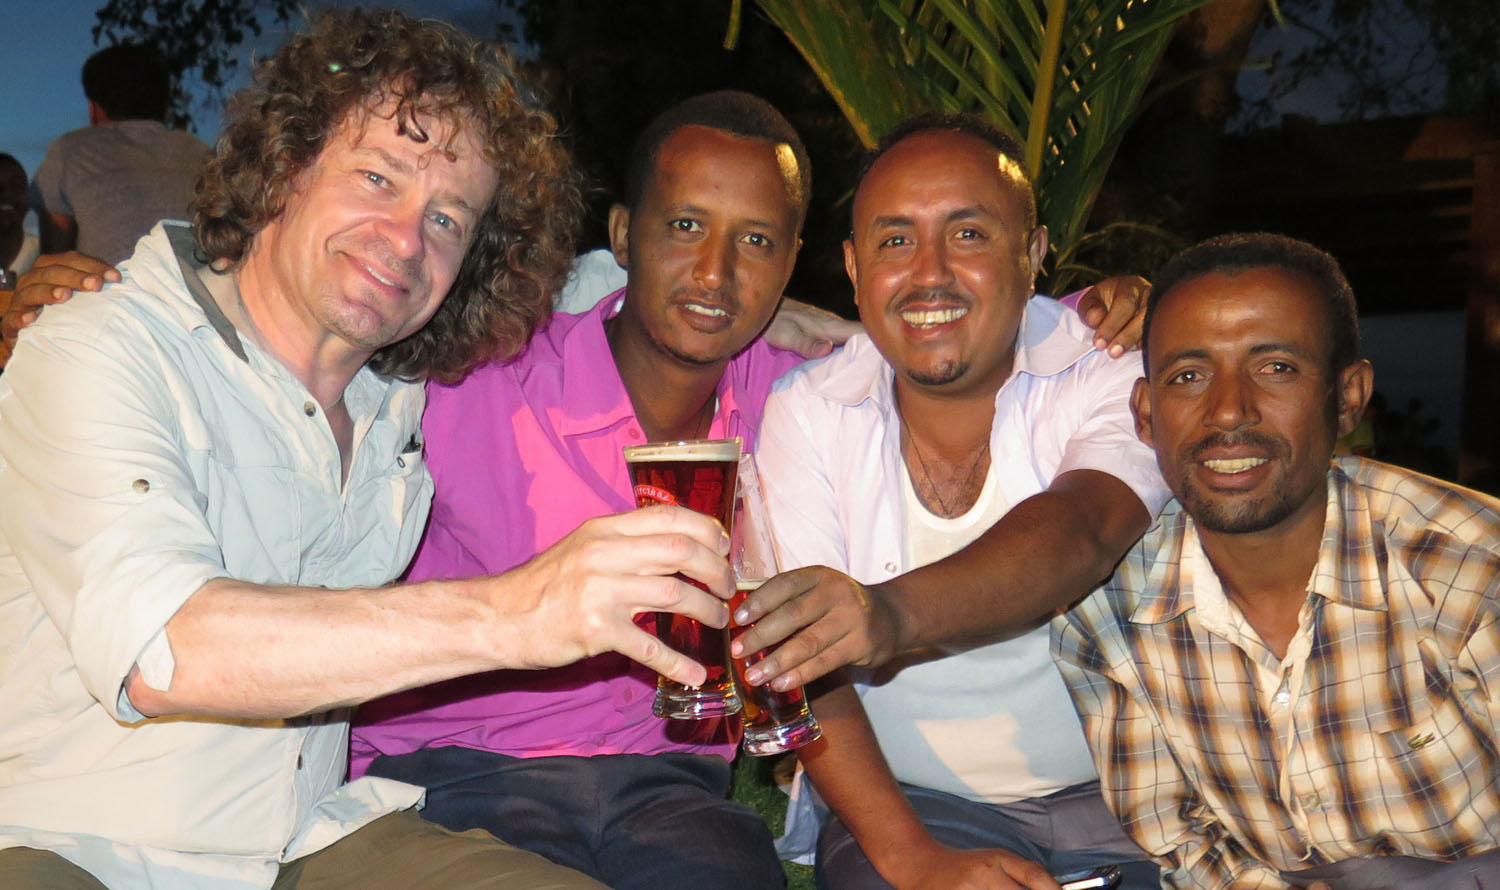 Ethiopia-Bahir-Dar-Desset-Resort-Friends